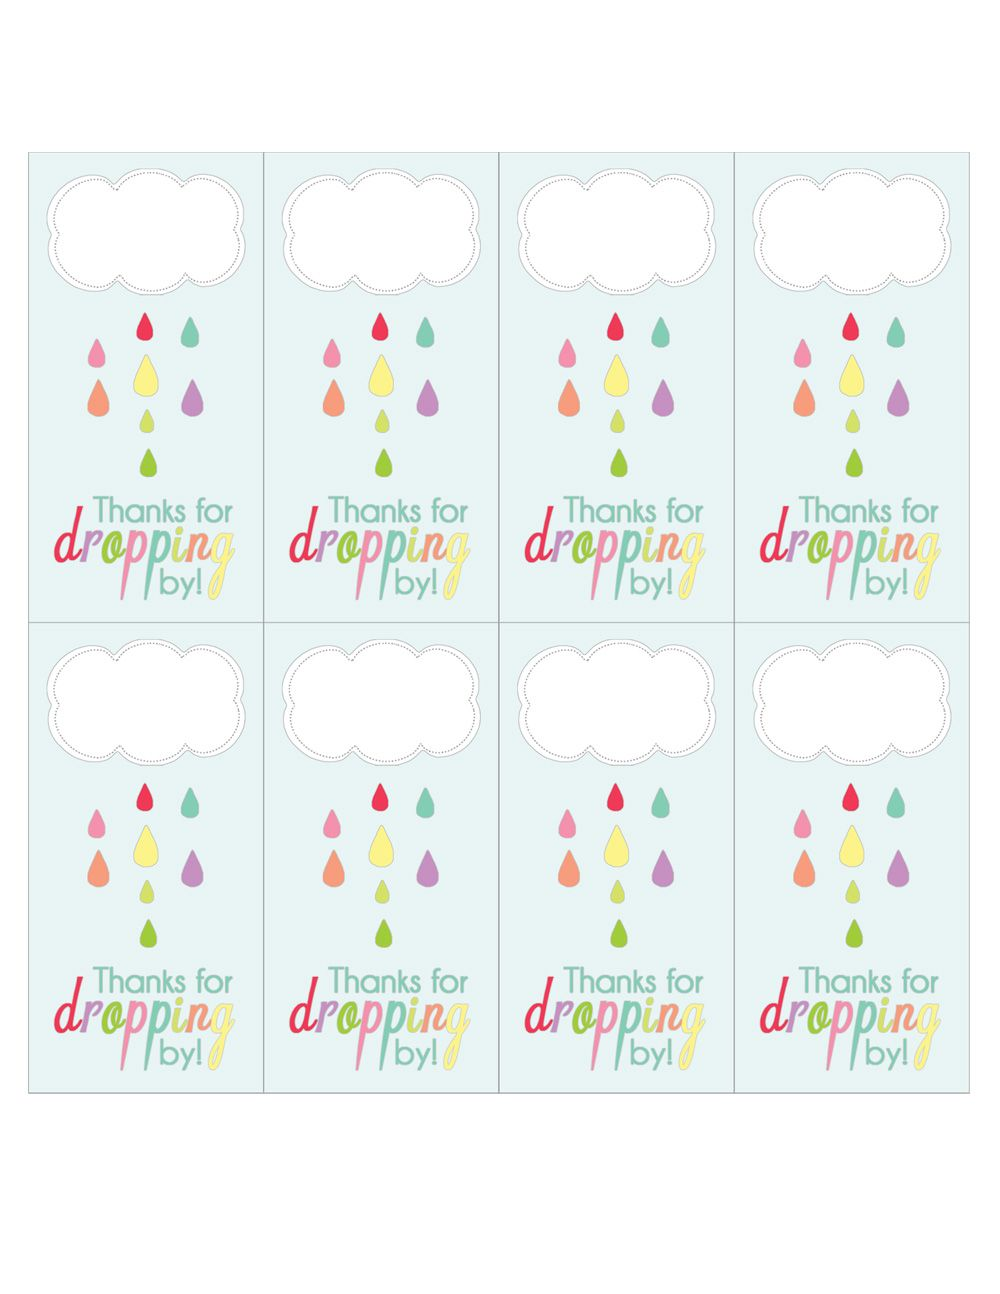 Shower of love free april showers party printables free in continuation of our april showers baby shower since it is my birthday month i decided to share all the party printables from this event as my gift to negle Images